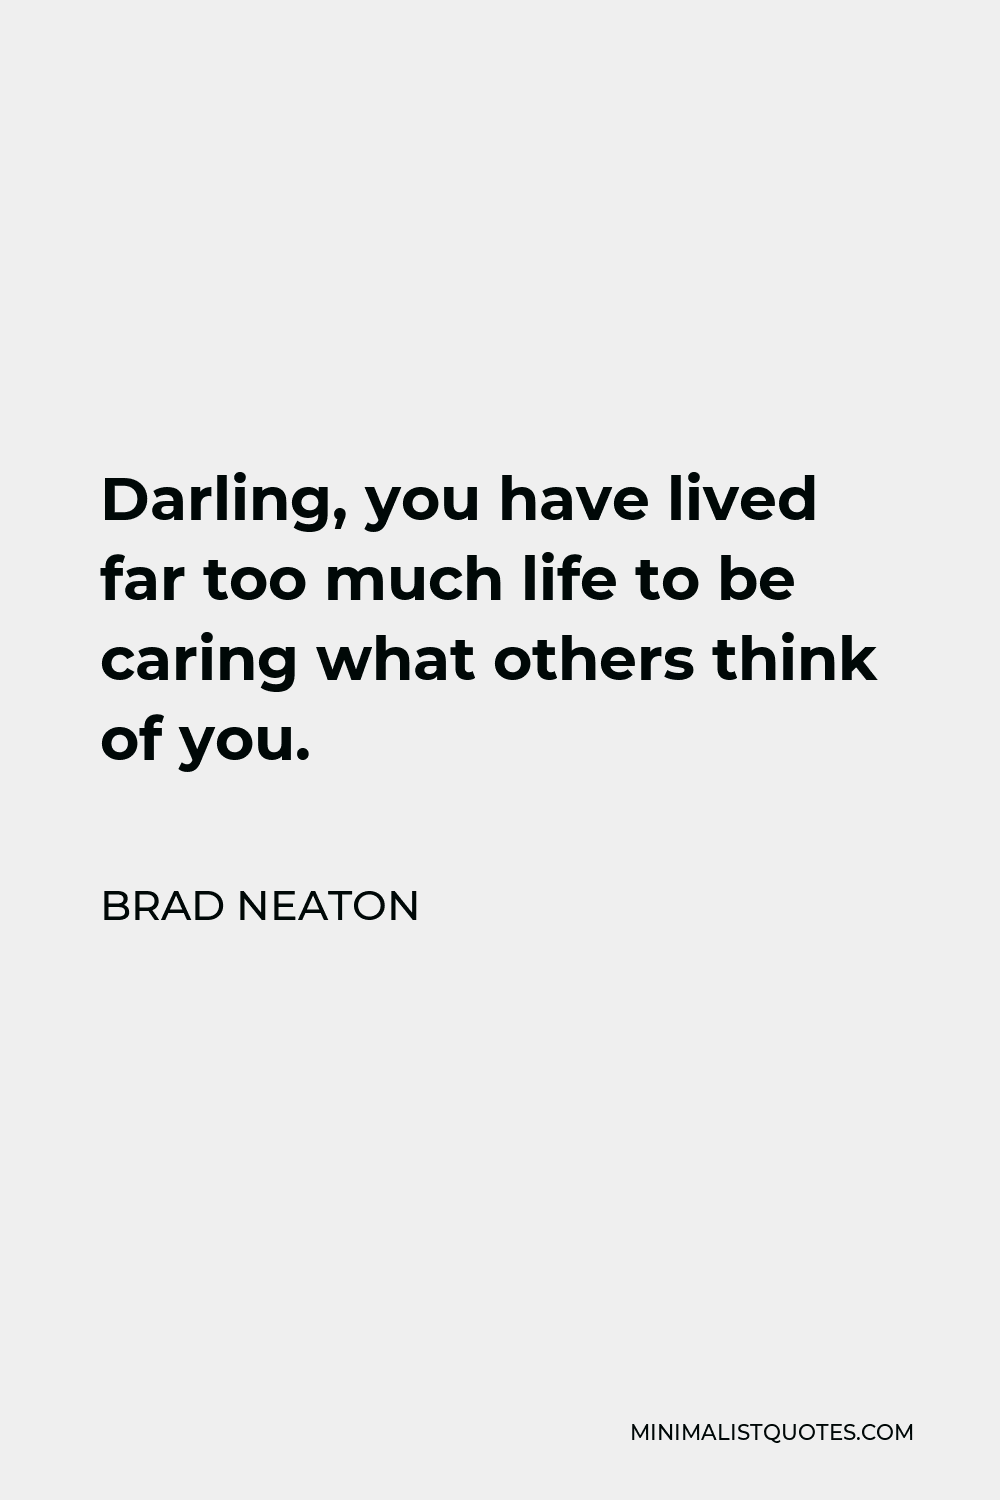 Brad Neaton Quote - Darling, you have lived far too much life to be caring what others think of you.